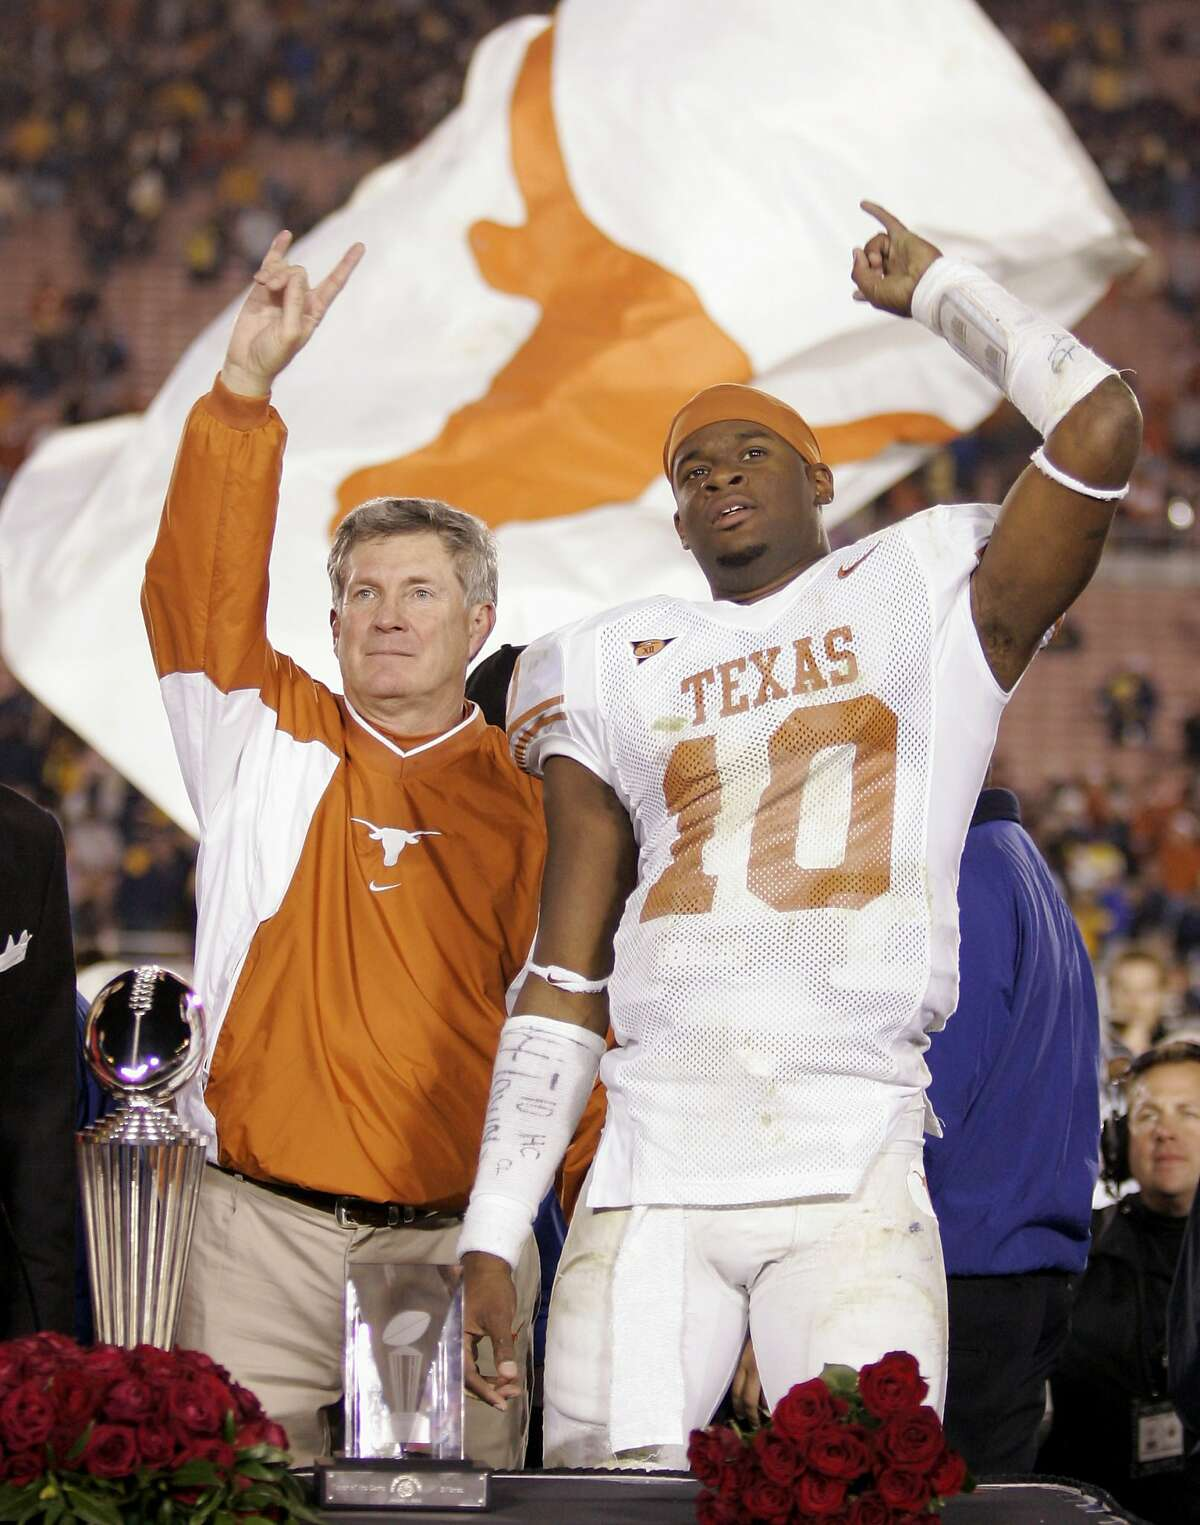 Texas head coach Mack Brown, left, and MVP Vince Young (10) celebrate with the Rose Bowl and MVP trophies after Texas beat Michigan, 38-37, in the Rose Bowl in Pasadena, Calif., Saturday, Jan. 1, 2005. (AP Photo/Mark J. Terrill) Ran on: 01-16-2005 Texas coach Mack Brown (left), with Rose Bowl MVP Vince Young, received a $22 million contract. The need for athletic departments to continually increase revenue has resulted in an inflated need to win.